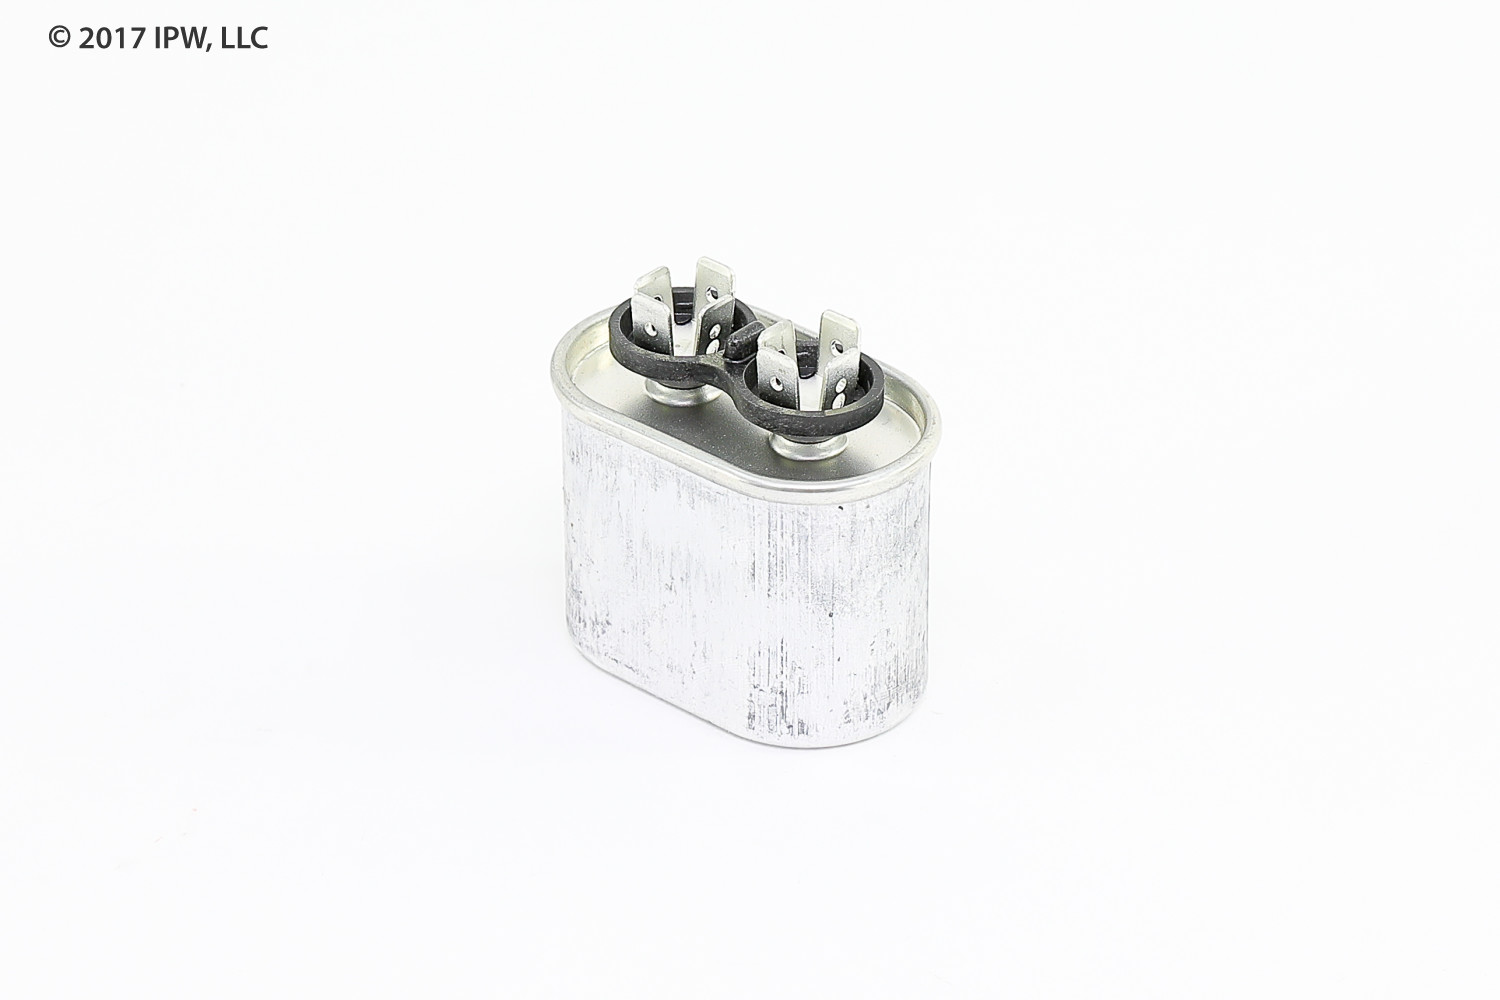 MARS 12907 7.5MFD 370V Oval Run Cap.